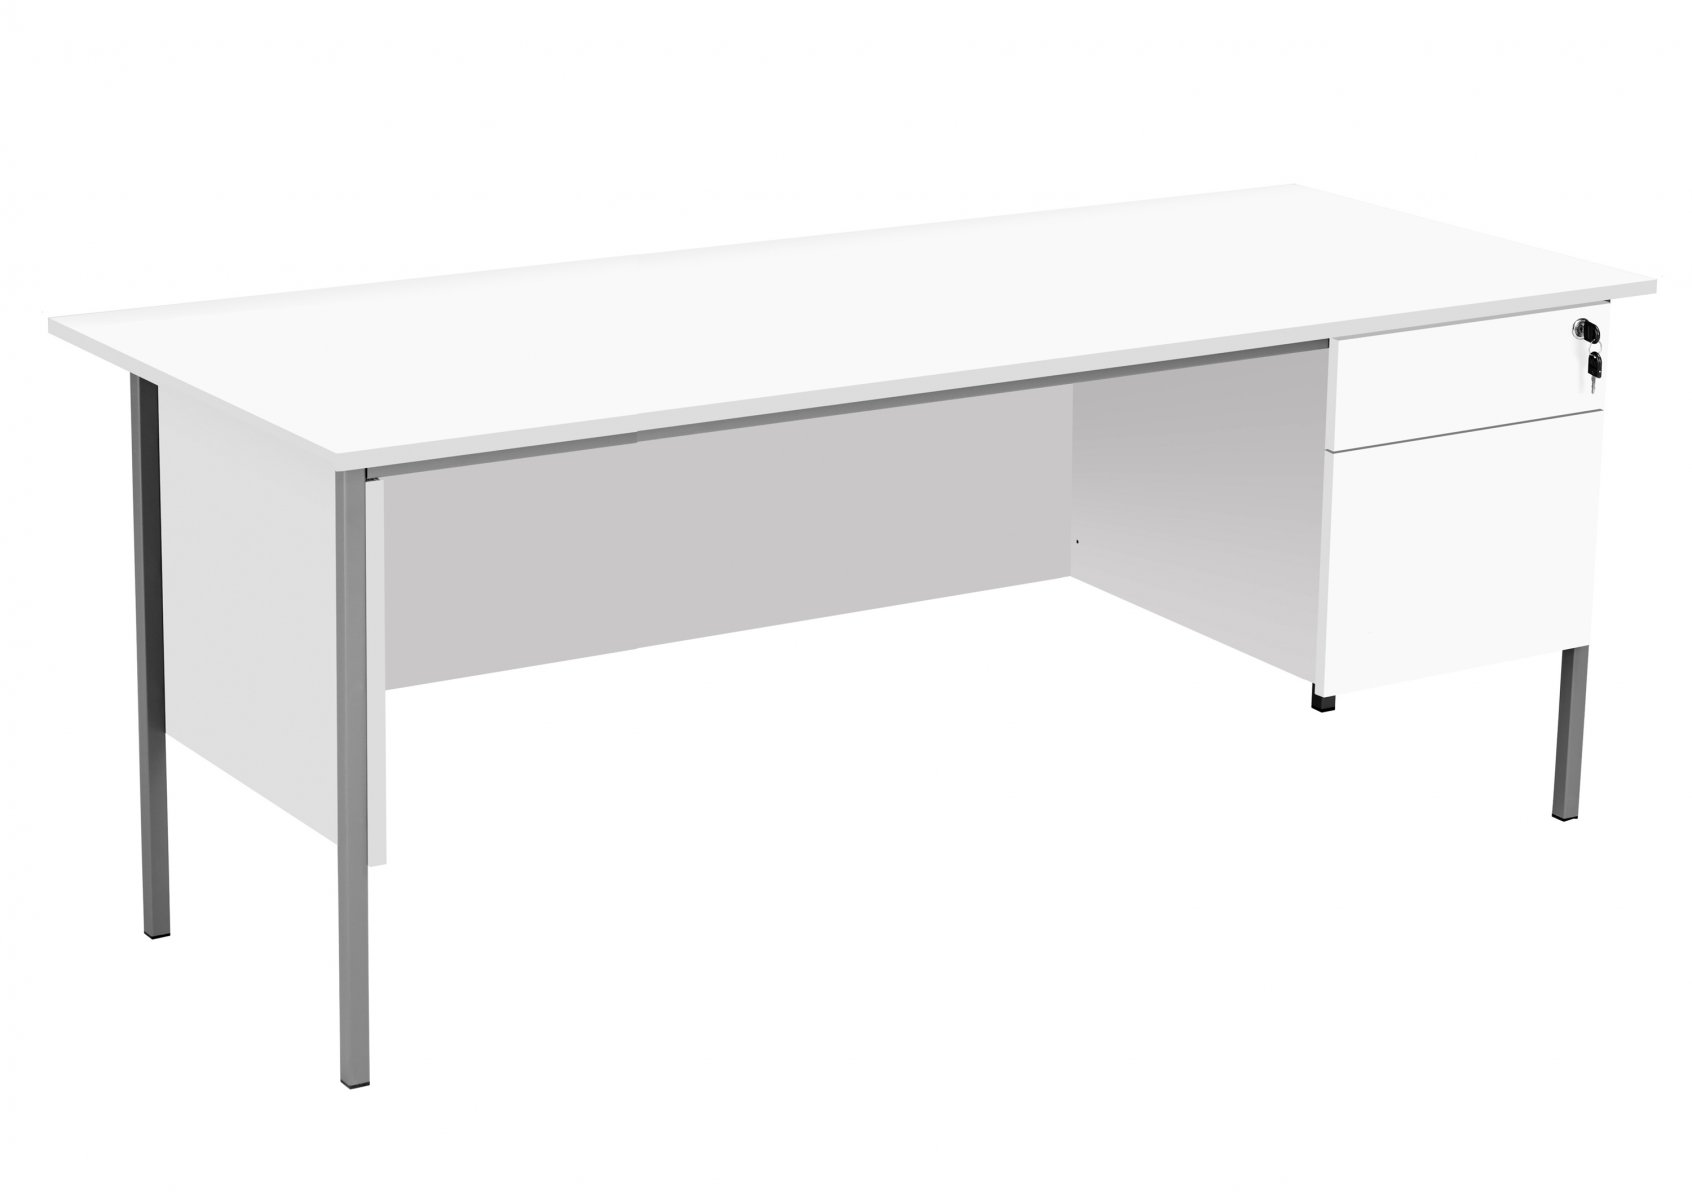 Eco 18 Rectangular 180 Desk with Single 2 Drawer Pedestal - White